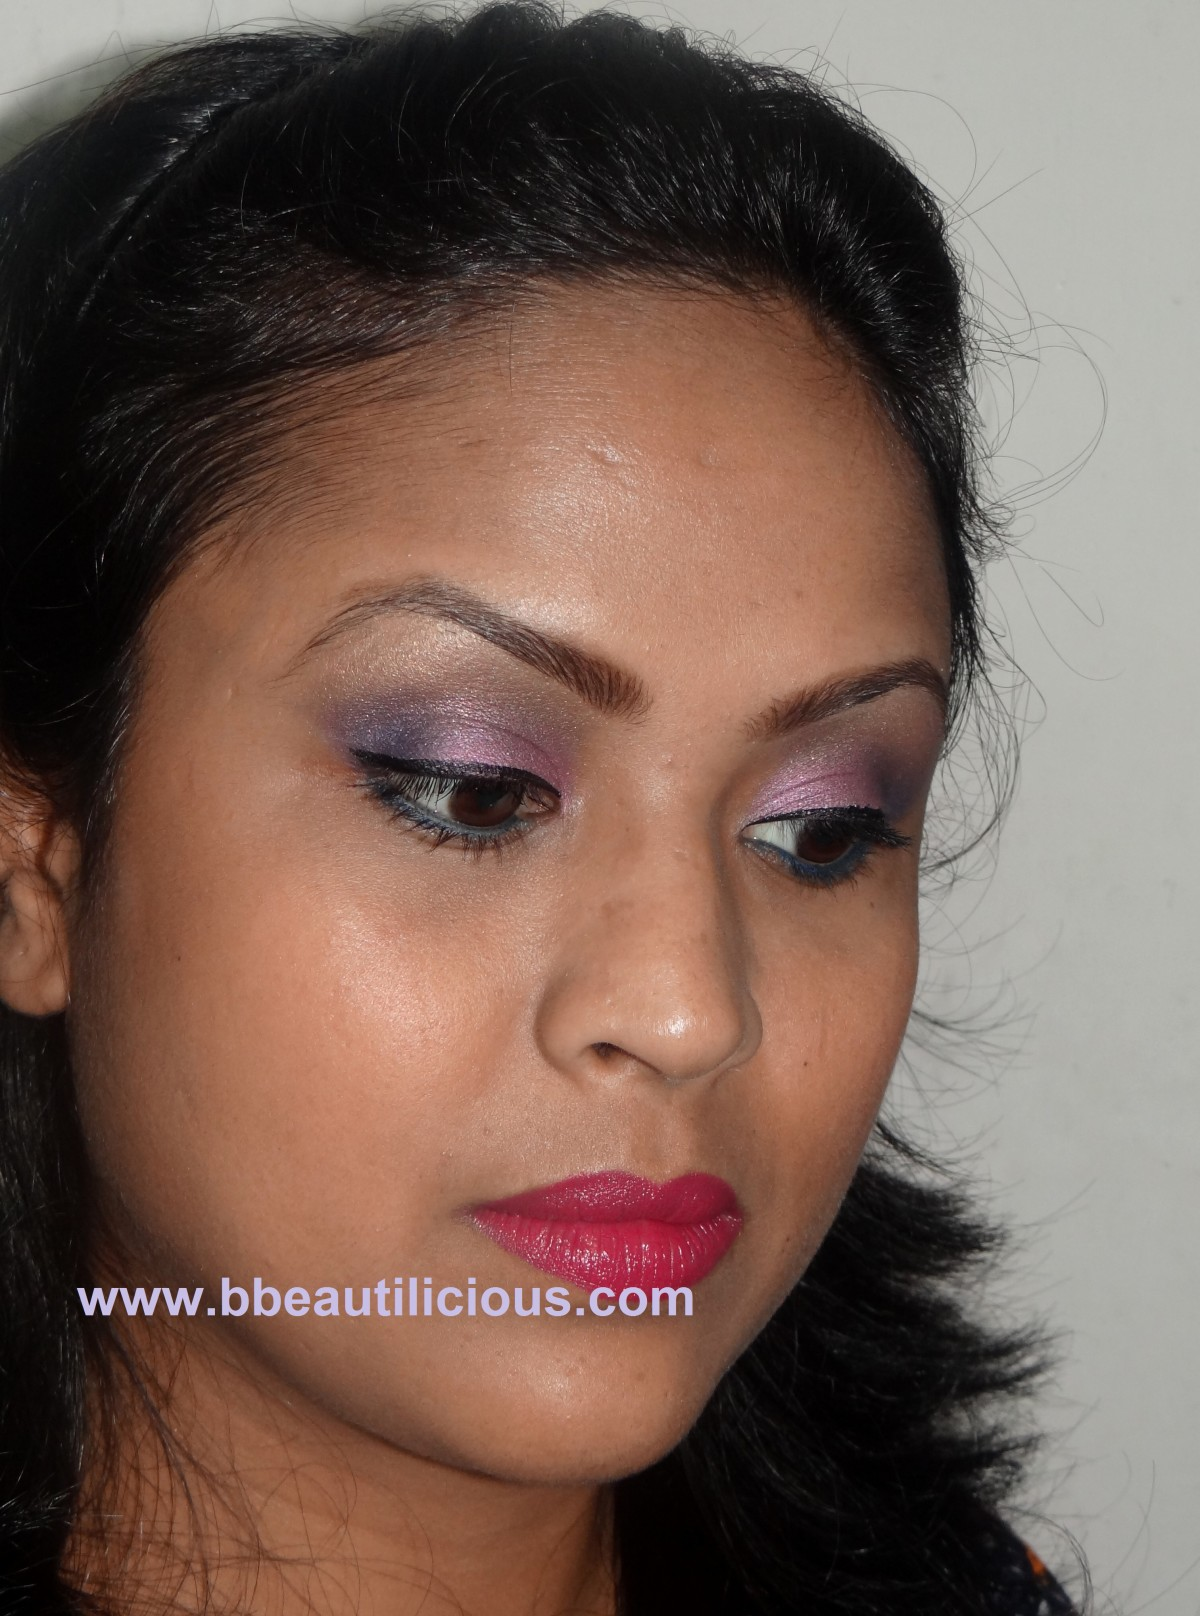 Inglot Pearl eyeshadow 445 swatch